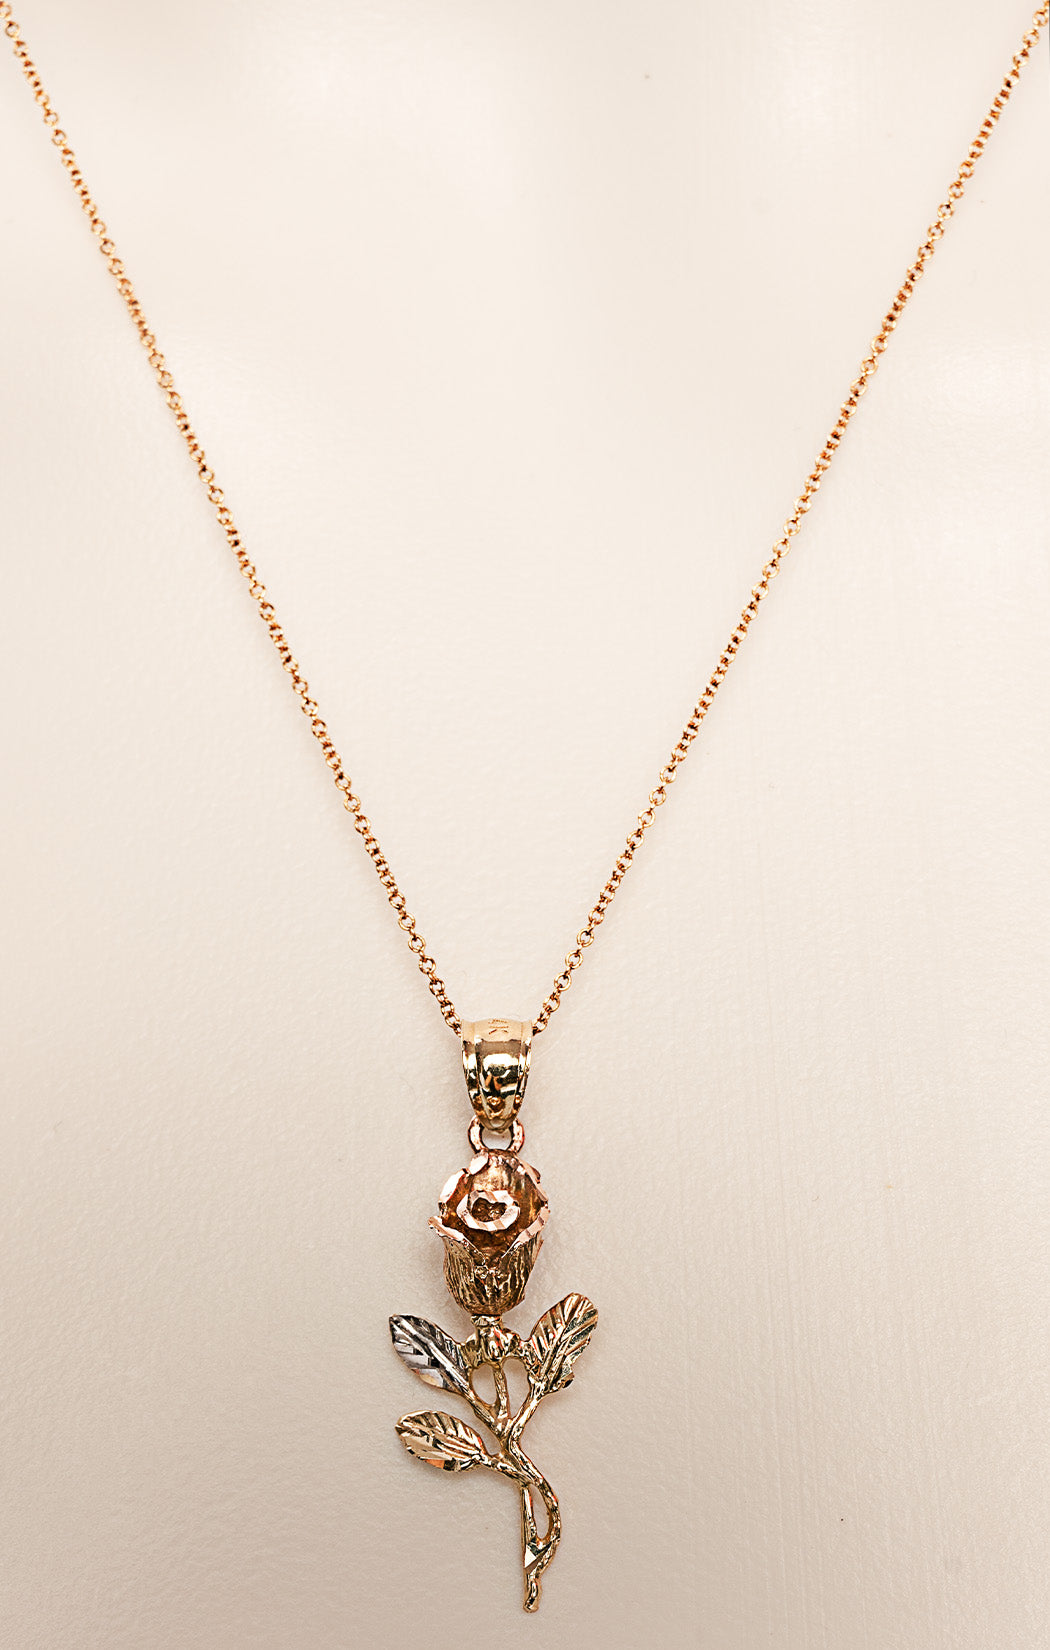 "Necklace  Size: 16"" length chain; pendant 1.5"" long"